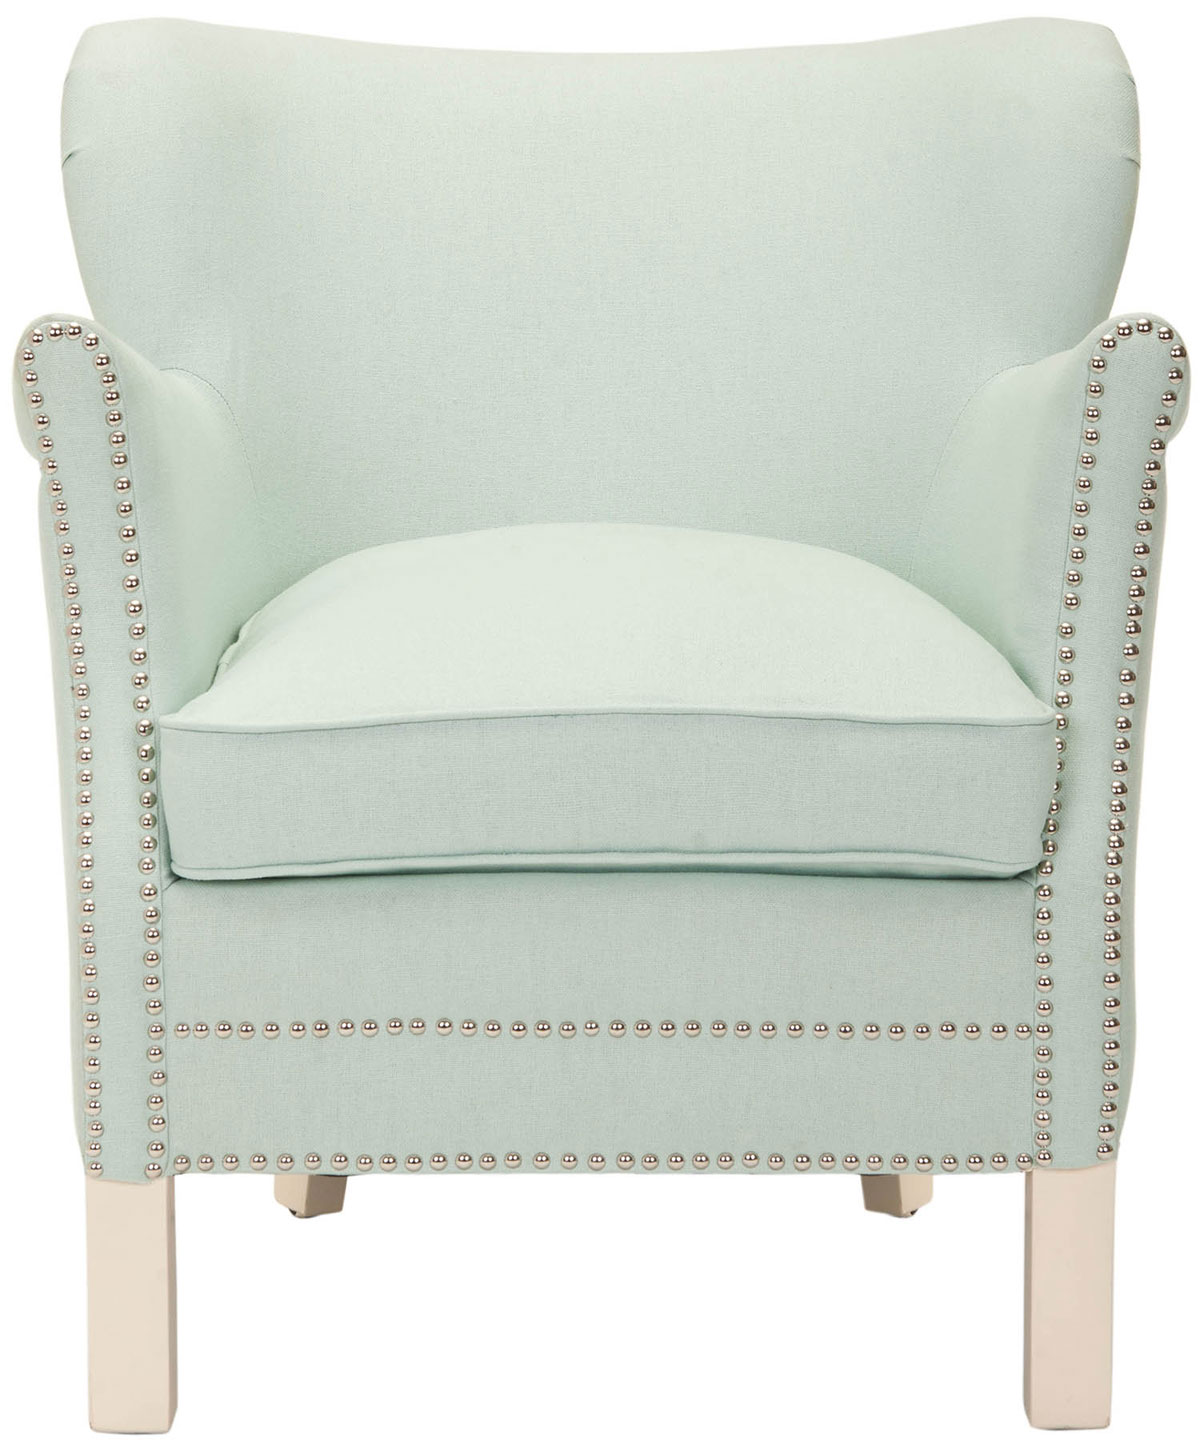 blue accent chair armchairs safavieh com rh safavieh com  seafoam green chair sashes